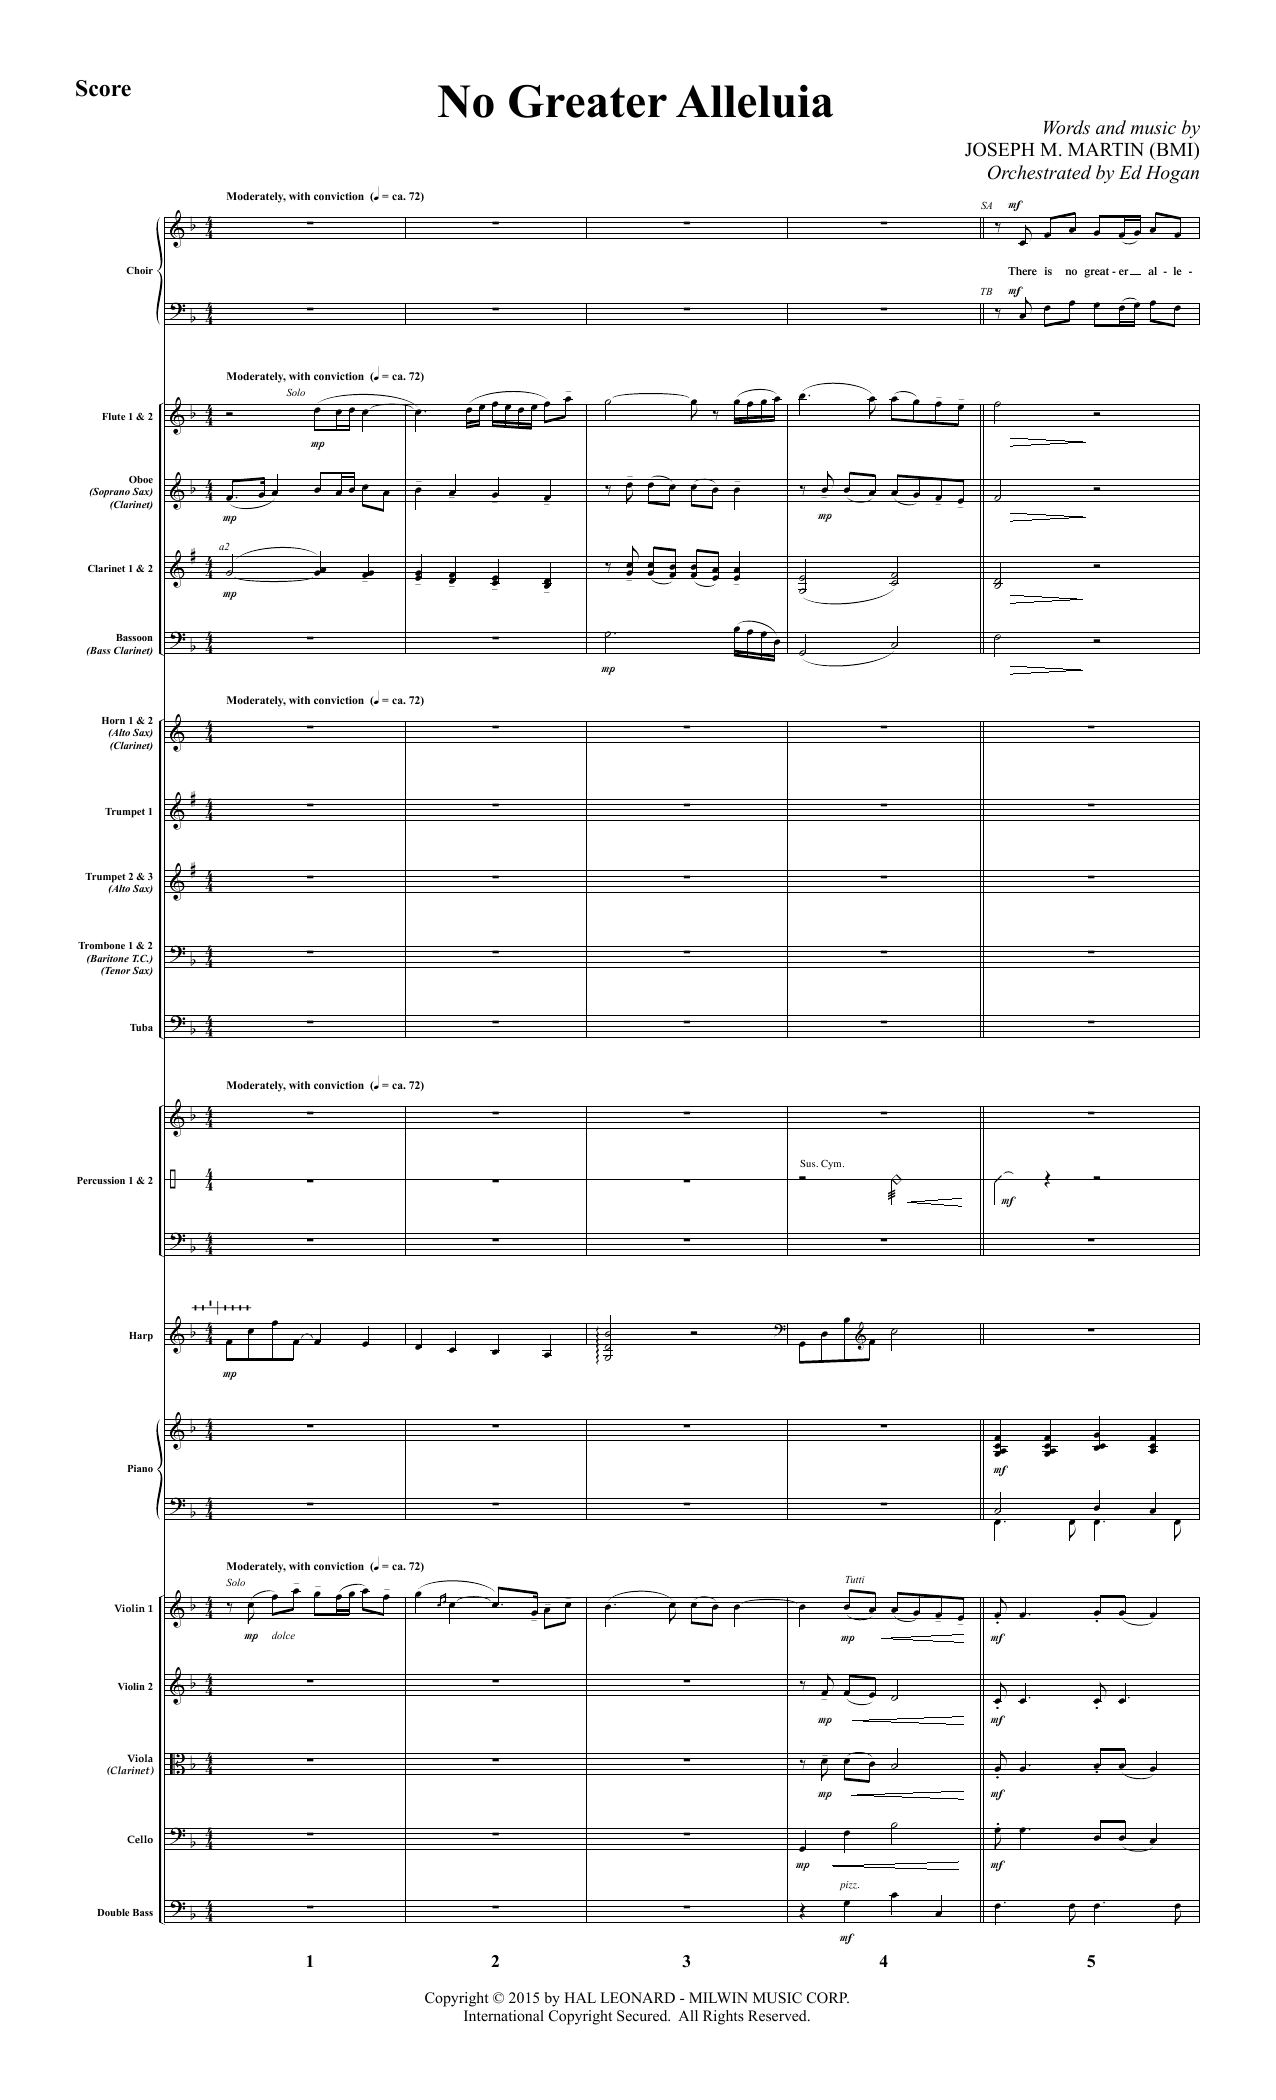 No Greater Alleluia (COMPLETE) sheet music for orchestra/band by Joseph M. Martin